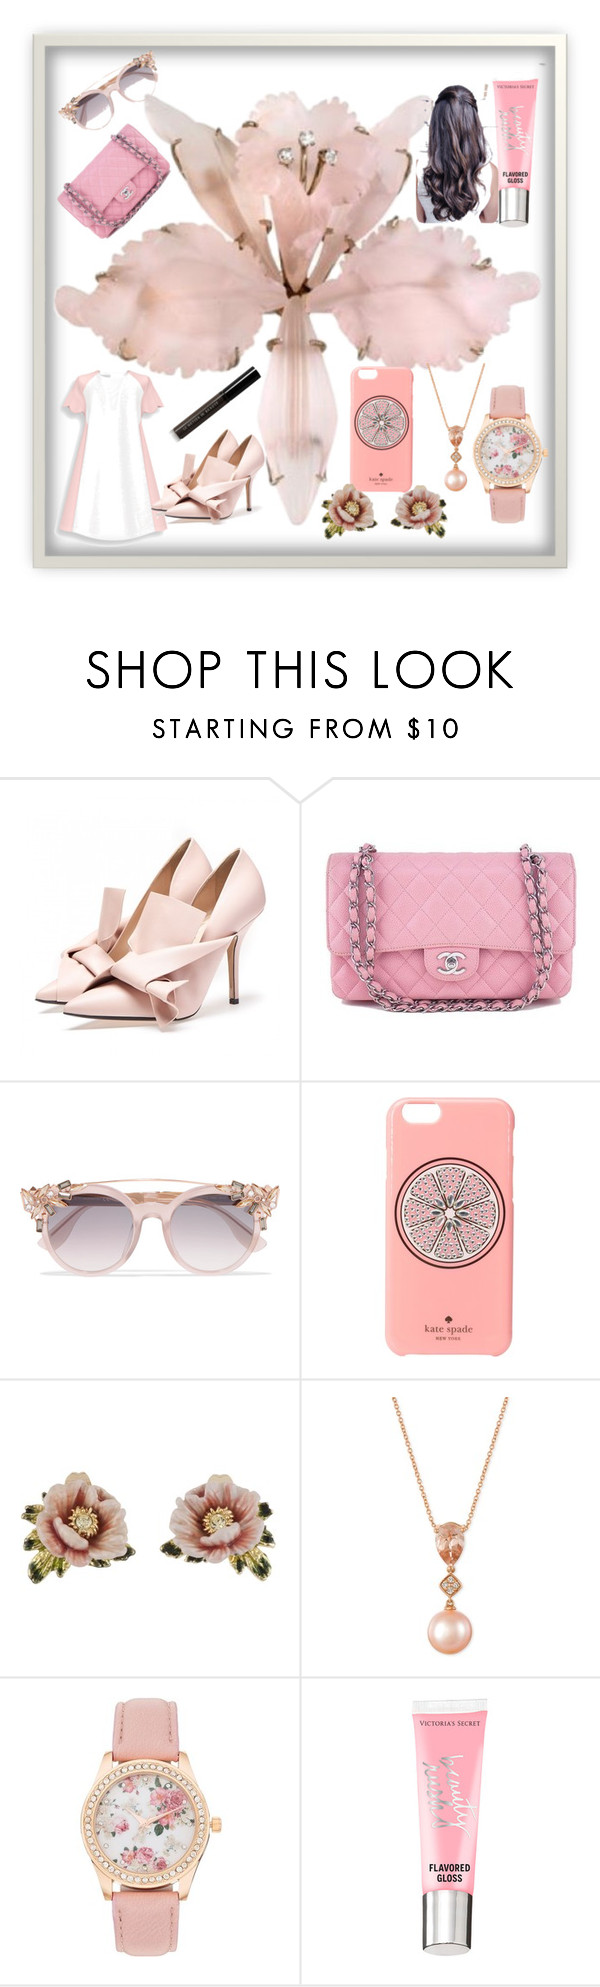 """#1"" by glamitup-377 ❤ liked on Polyvore featuring Chanel, Jimmy Choo, Kate Spade, Les Néréides, LE VIAN, Beauty Rush, Le Métier de Beauté and pastel"